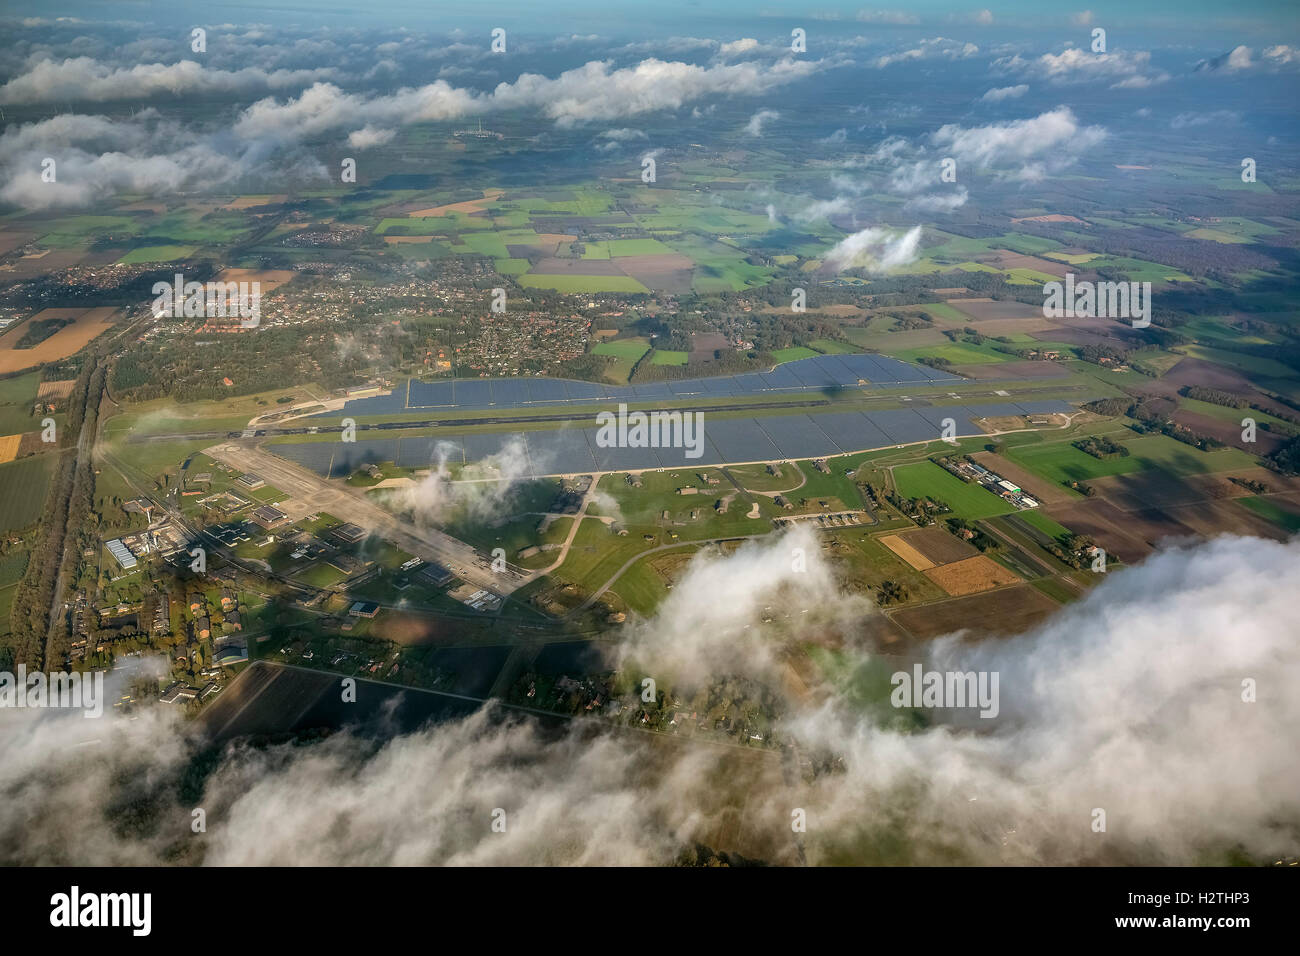 Aerial picture, former air base Ahlhorn, former military airport of Ahlhorn ETNA, Emstek, Lower Saxony, Germany, - Stock Image